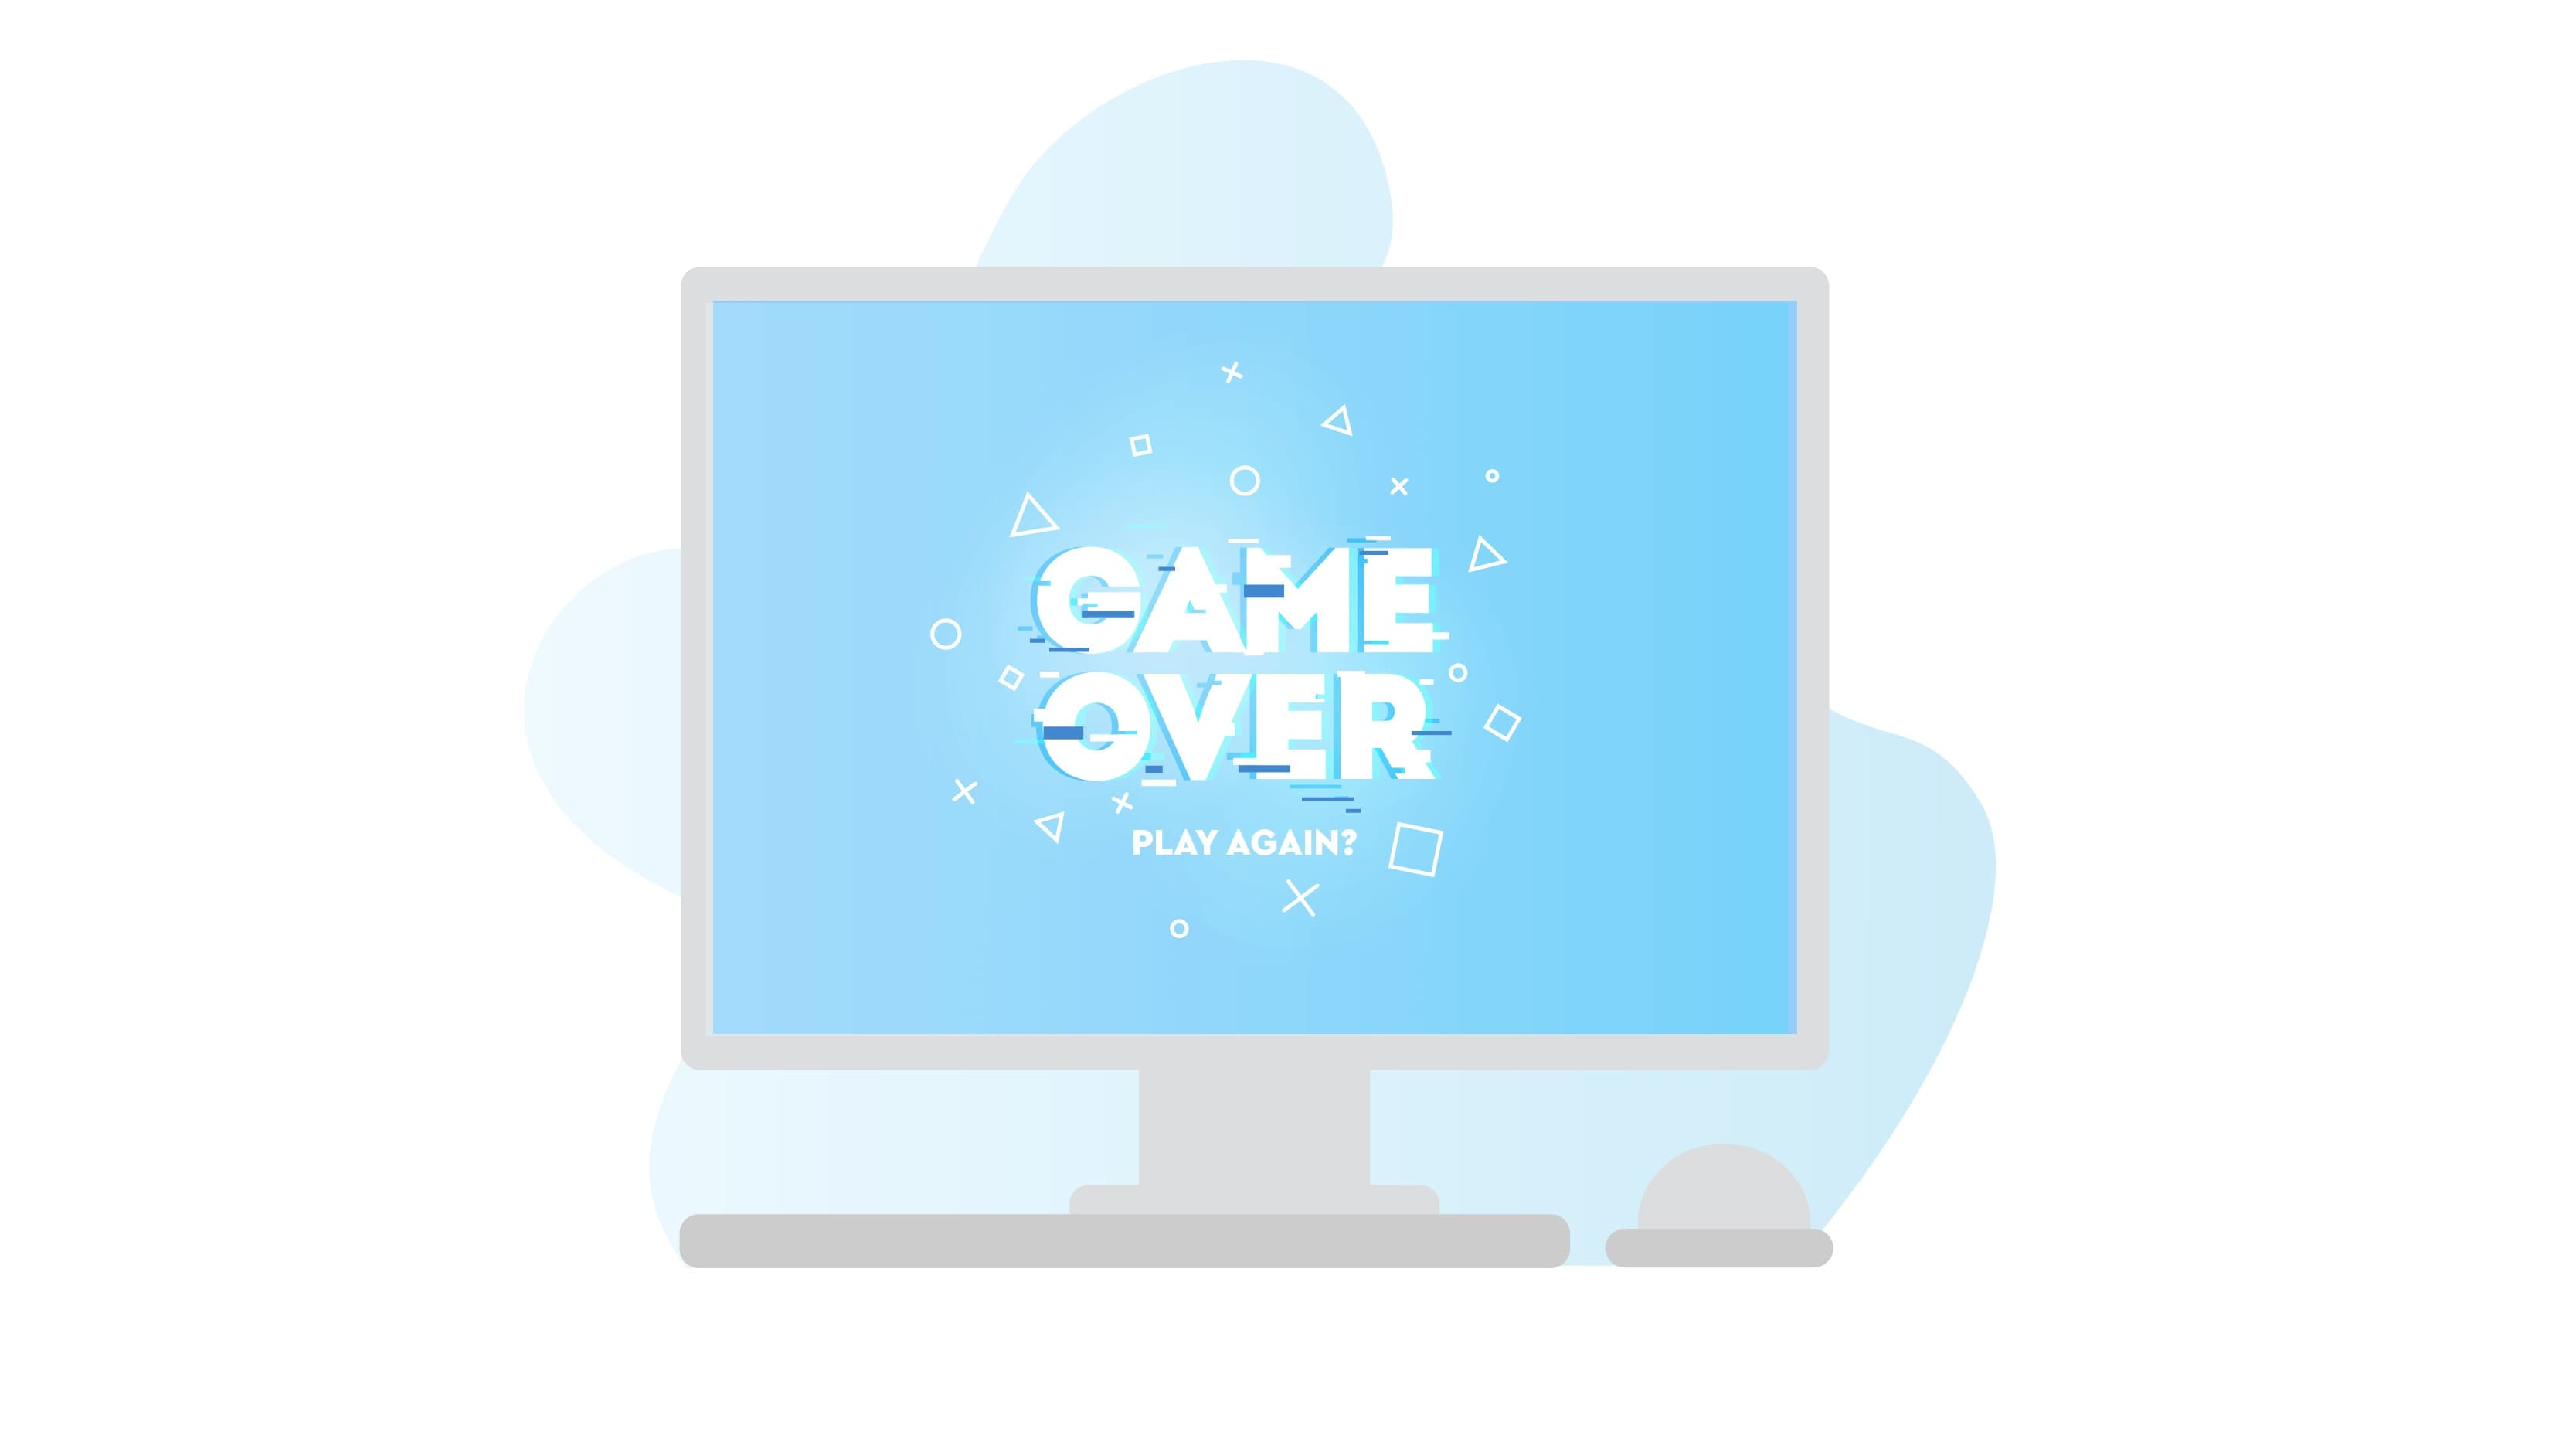 Poor gaming latency can lead to game over